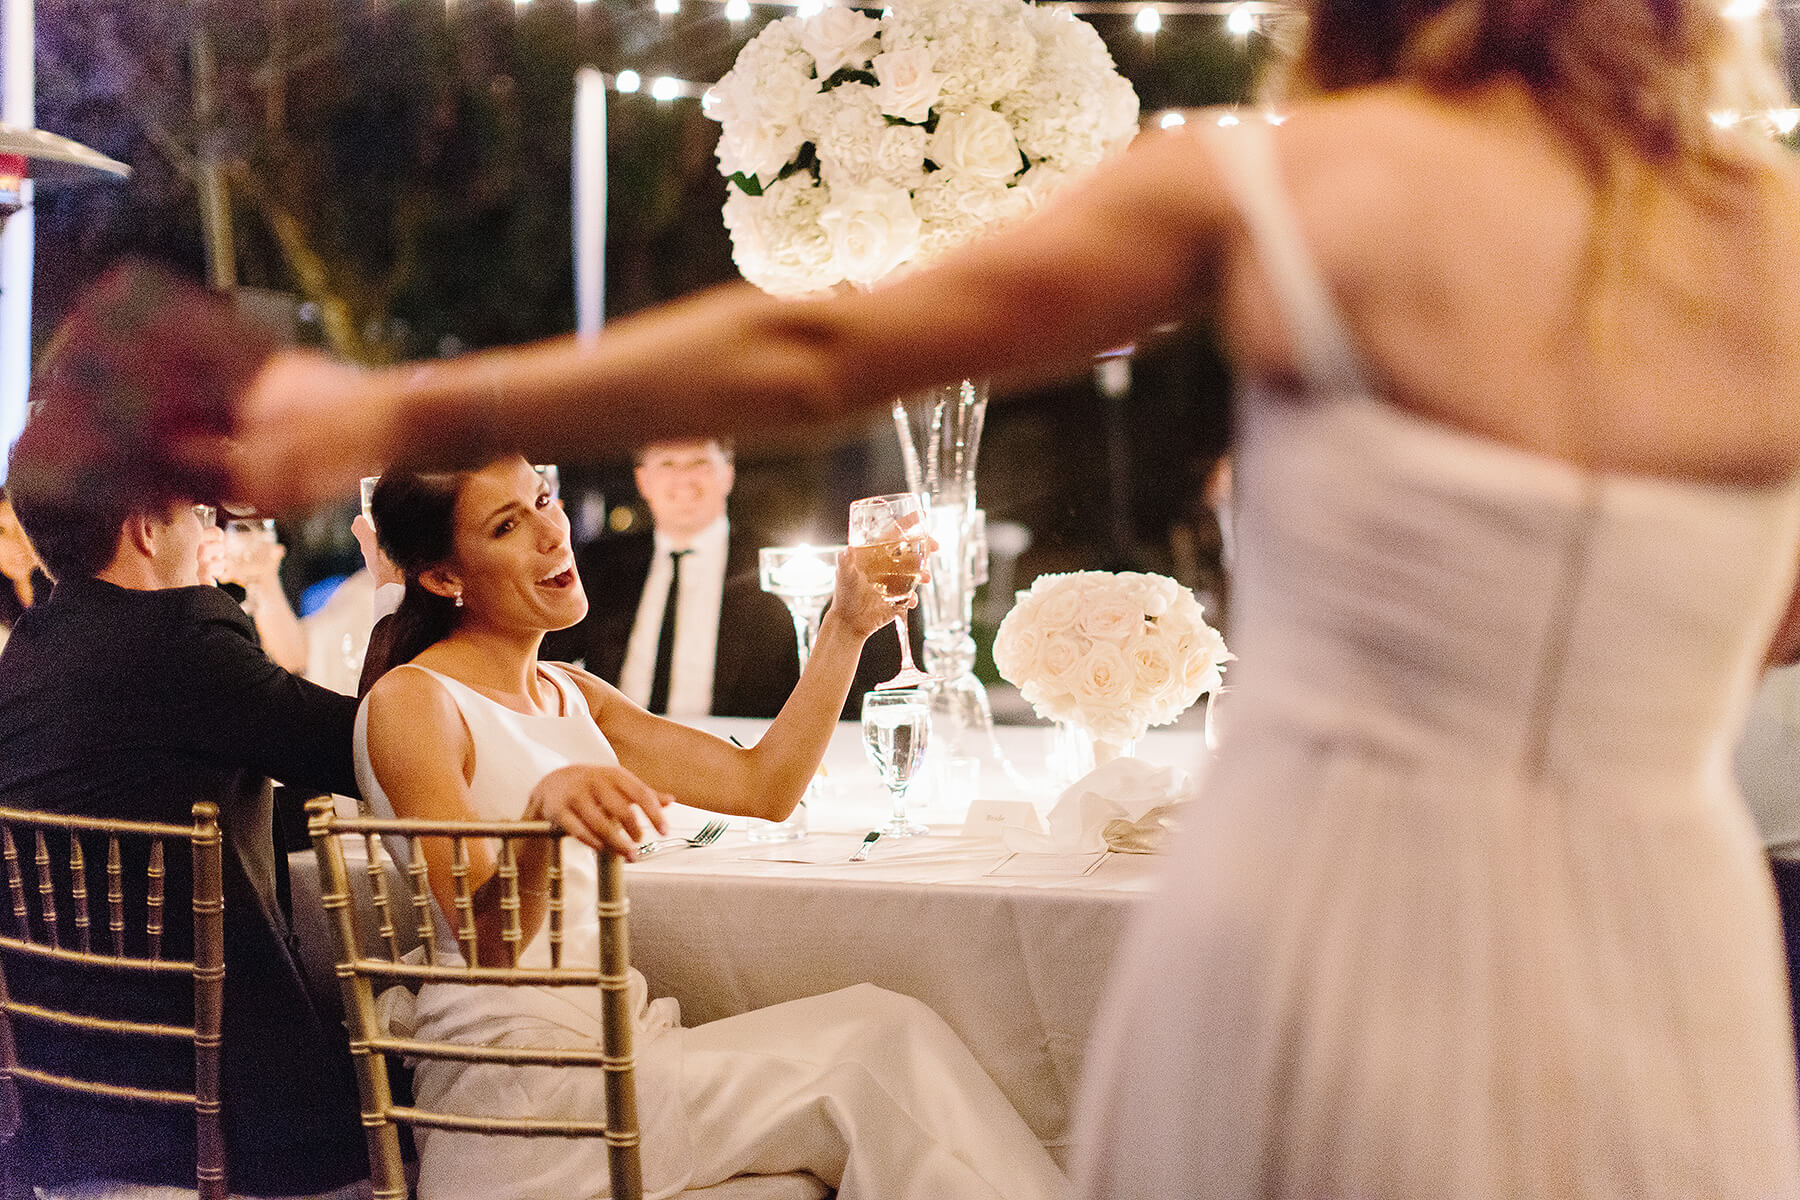 bride raises glass to toast bridesmaid after speech